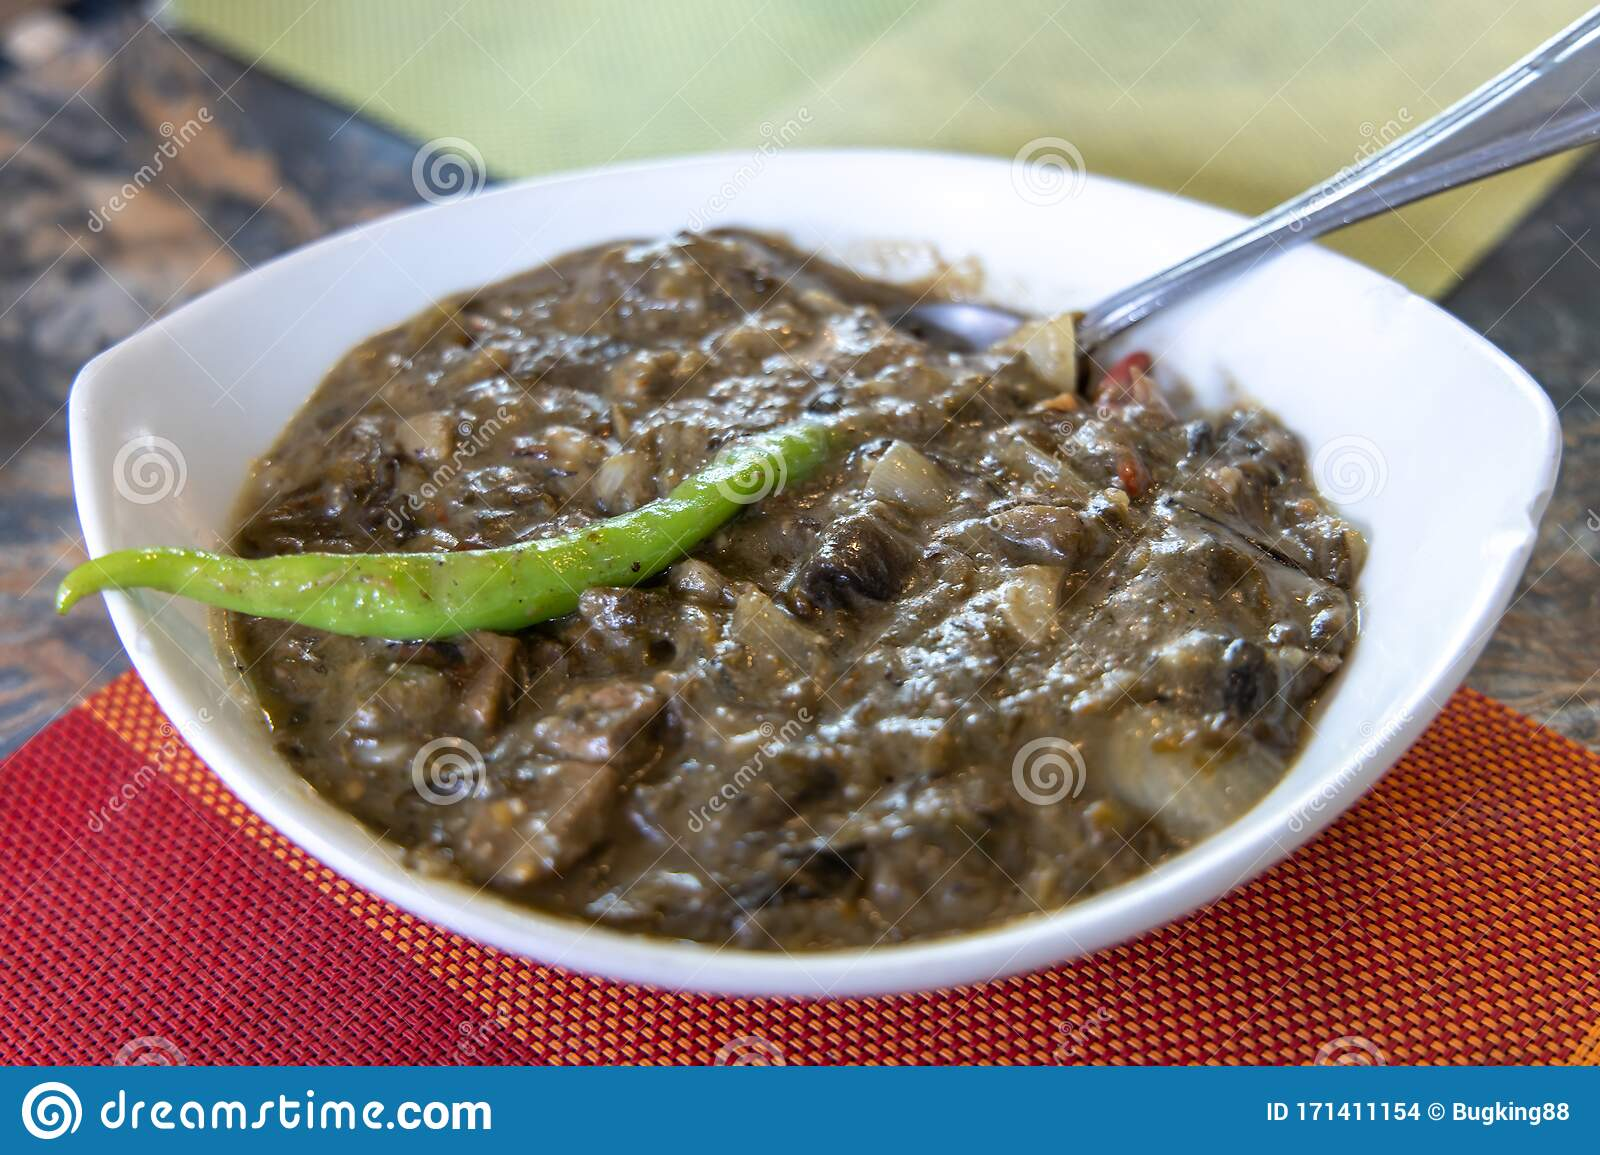 Laing Is A Filipino Dish Composed Of Dried Taro Leaves And Coconut Milk Stock Photo Image Of Laing Milk 171411154